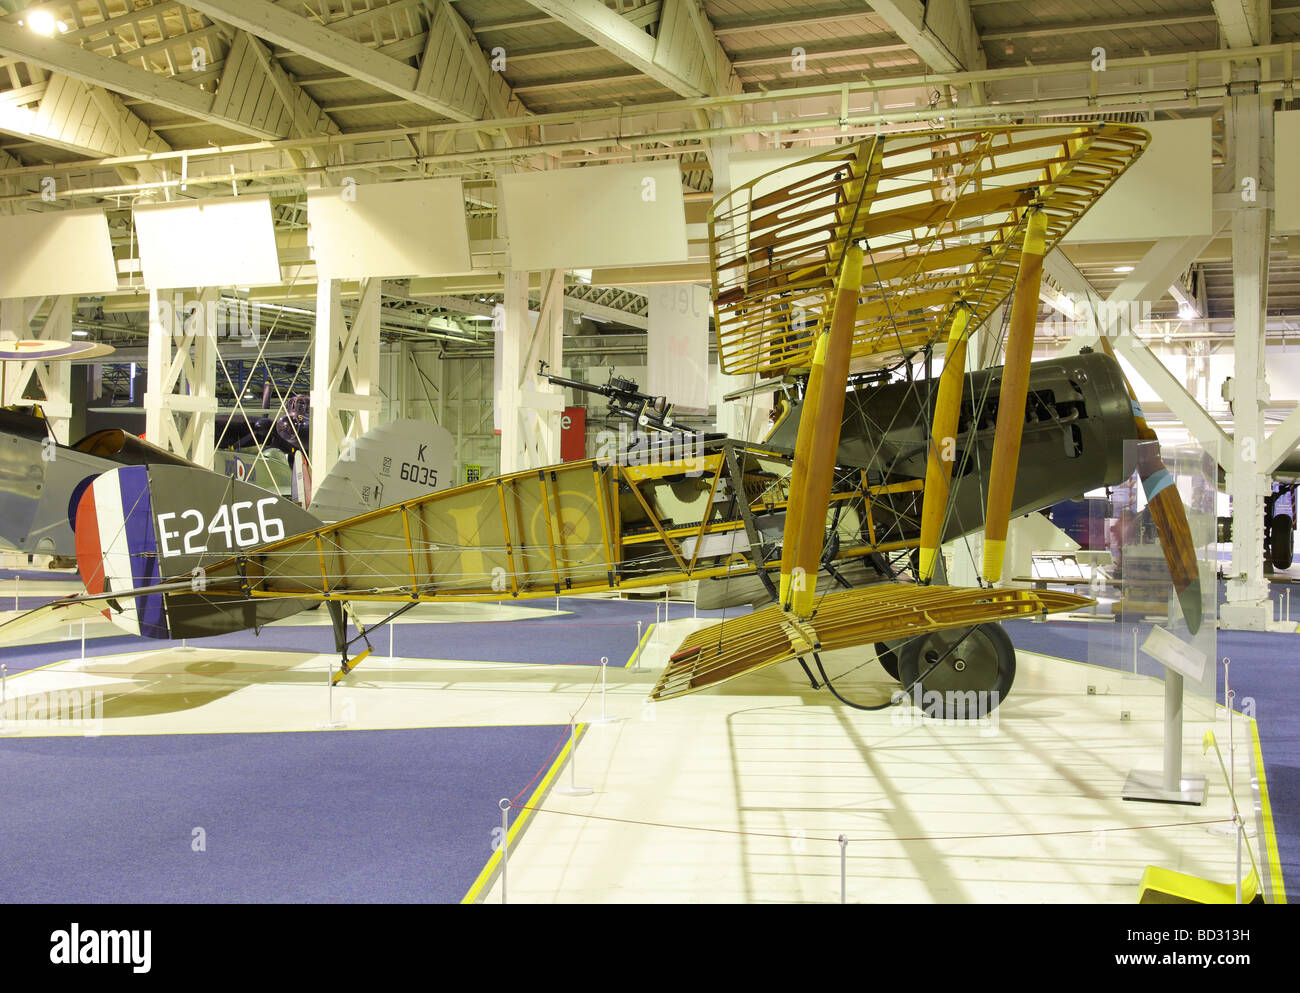 Early Twentieth Century Bi-plane fighter aircraft of the Royal Flying Corps. - Stock Image